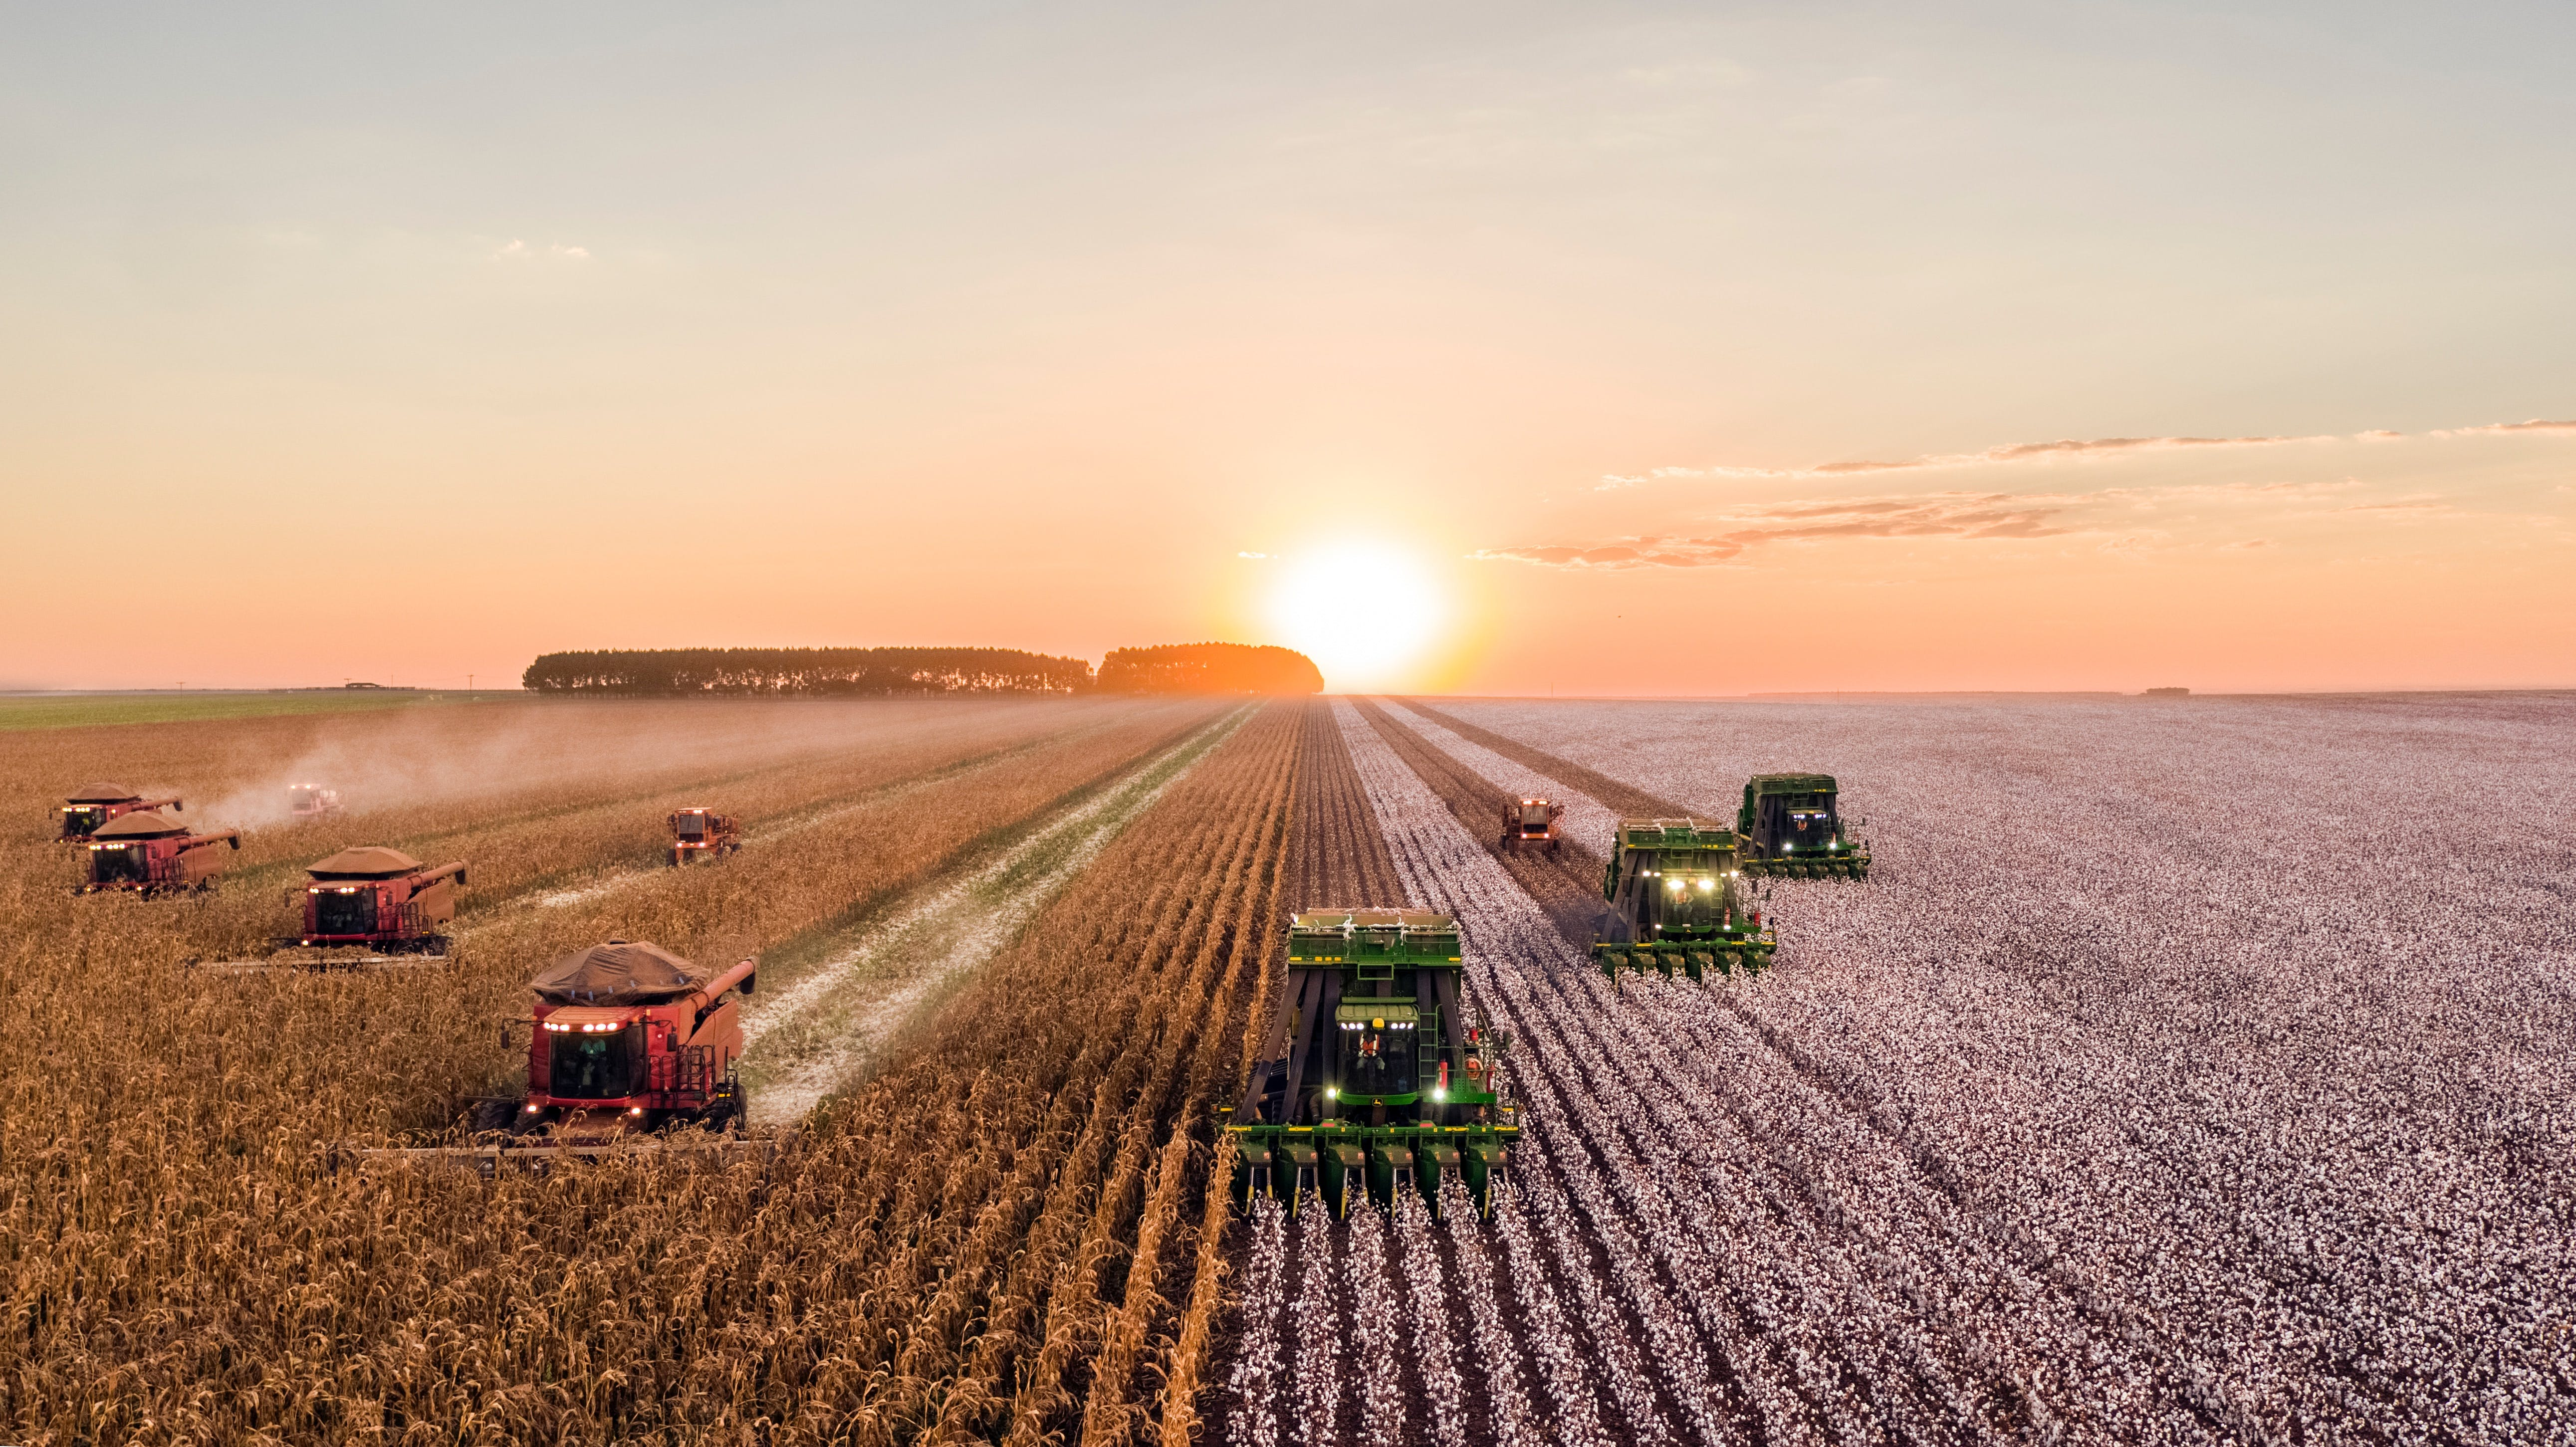 Reducing agricultural carbon emissions will be good for the planet and our stomachs